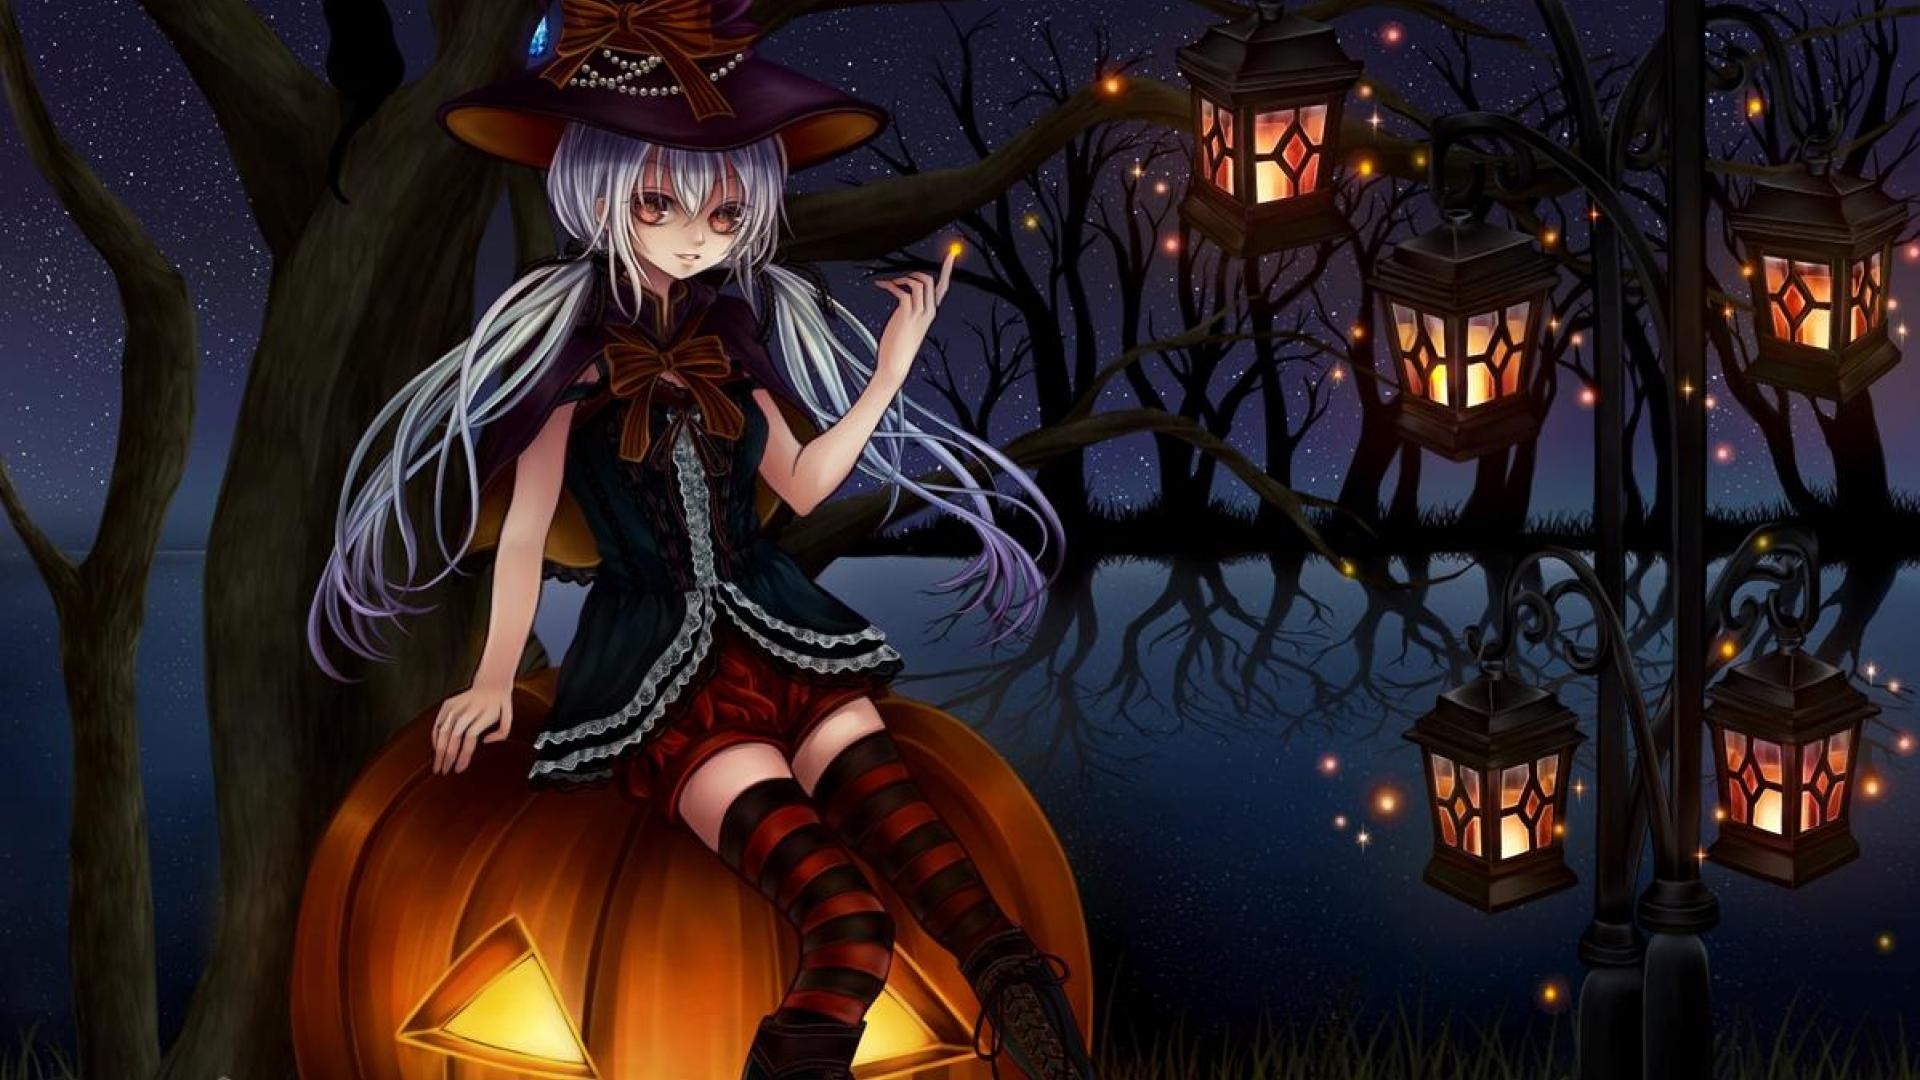 Wallpapers Anime Scary 71 Background Pictures